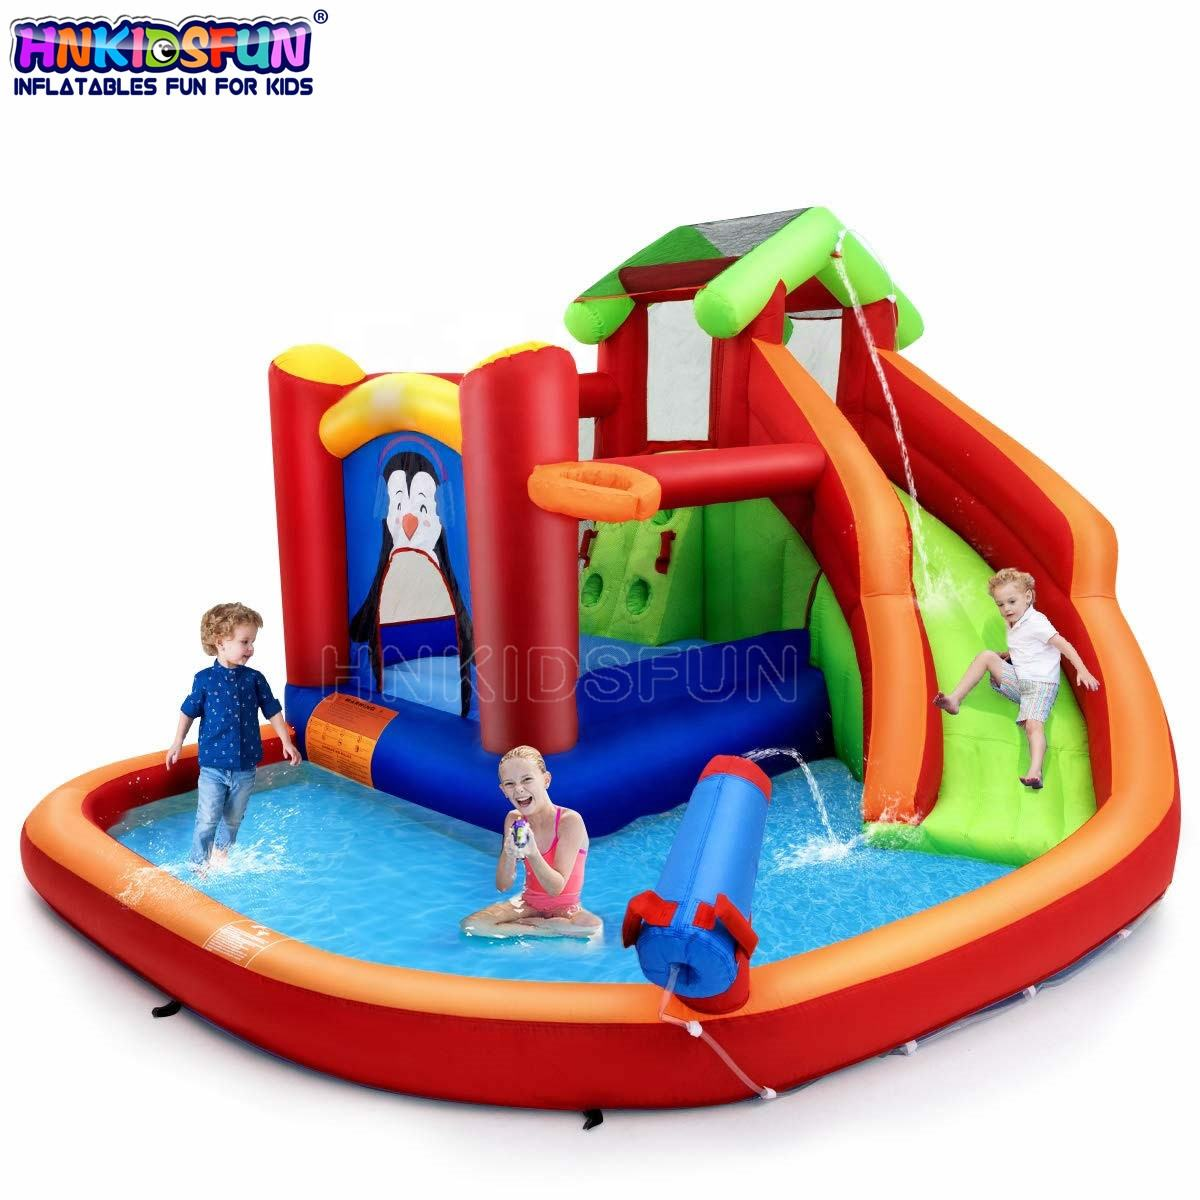 Home Use Air Bouncer Kids Jumping Trampoline Inflatable Bouncy Castles with Slide